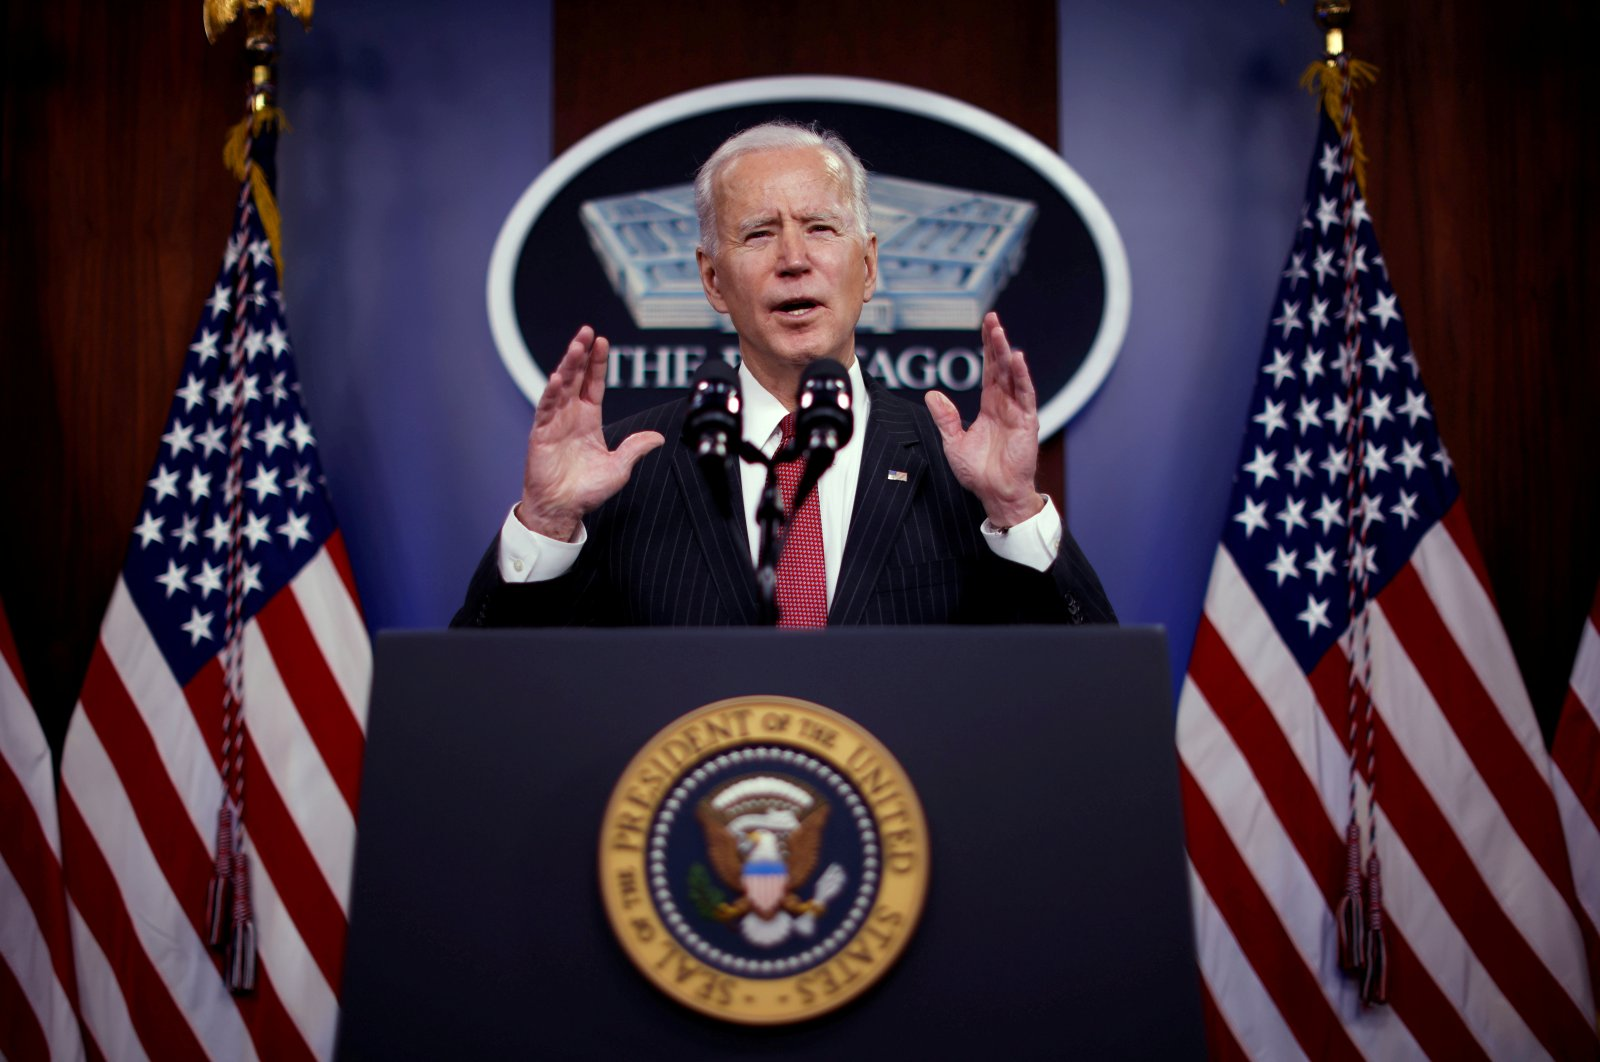 U.S. President Joe Biden delivers remarks to Defense Department personnel during a visit to the Pentagon in Arlington, Virginia, U.S., Feb. 10, 2021. (Reuters File Photo)